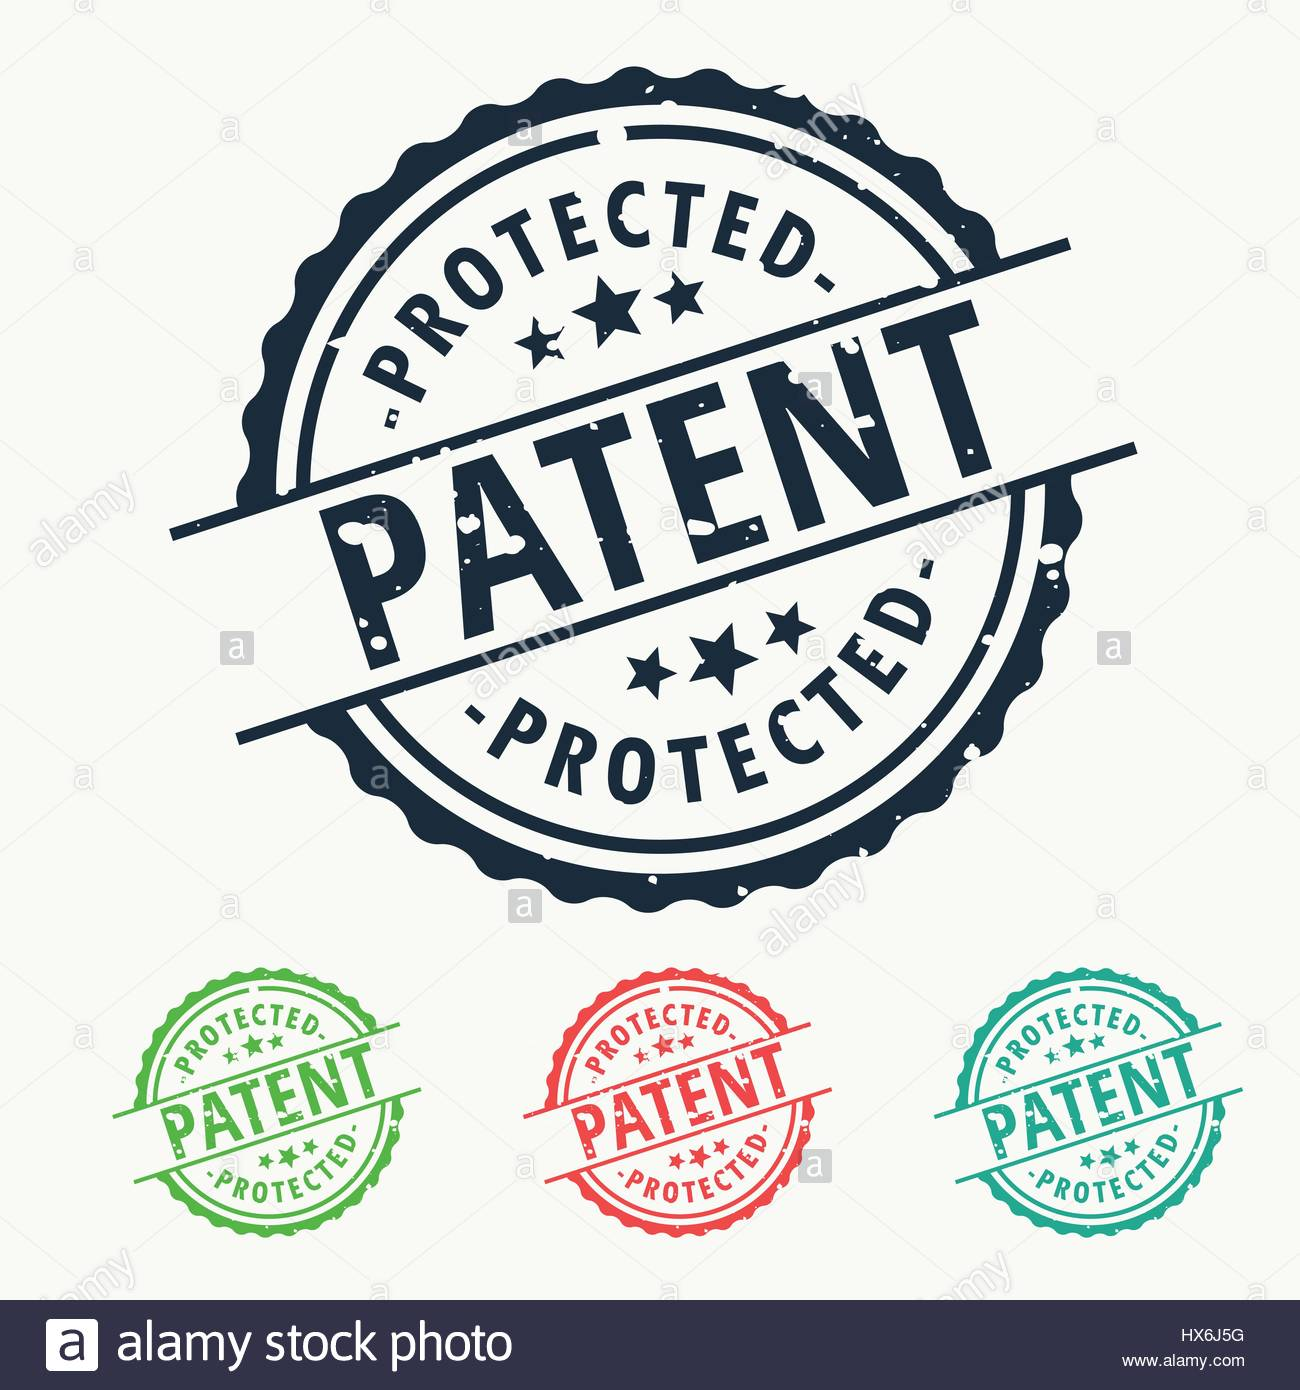 patent protected rubber stamp badge set - Stock Image